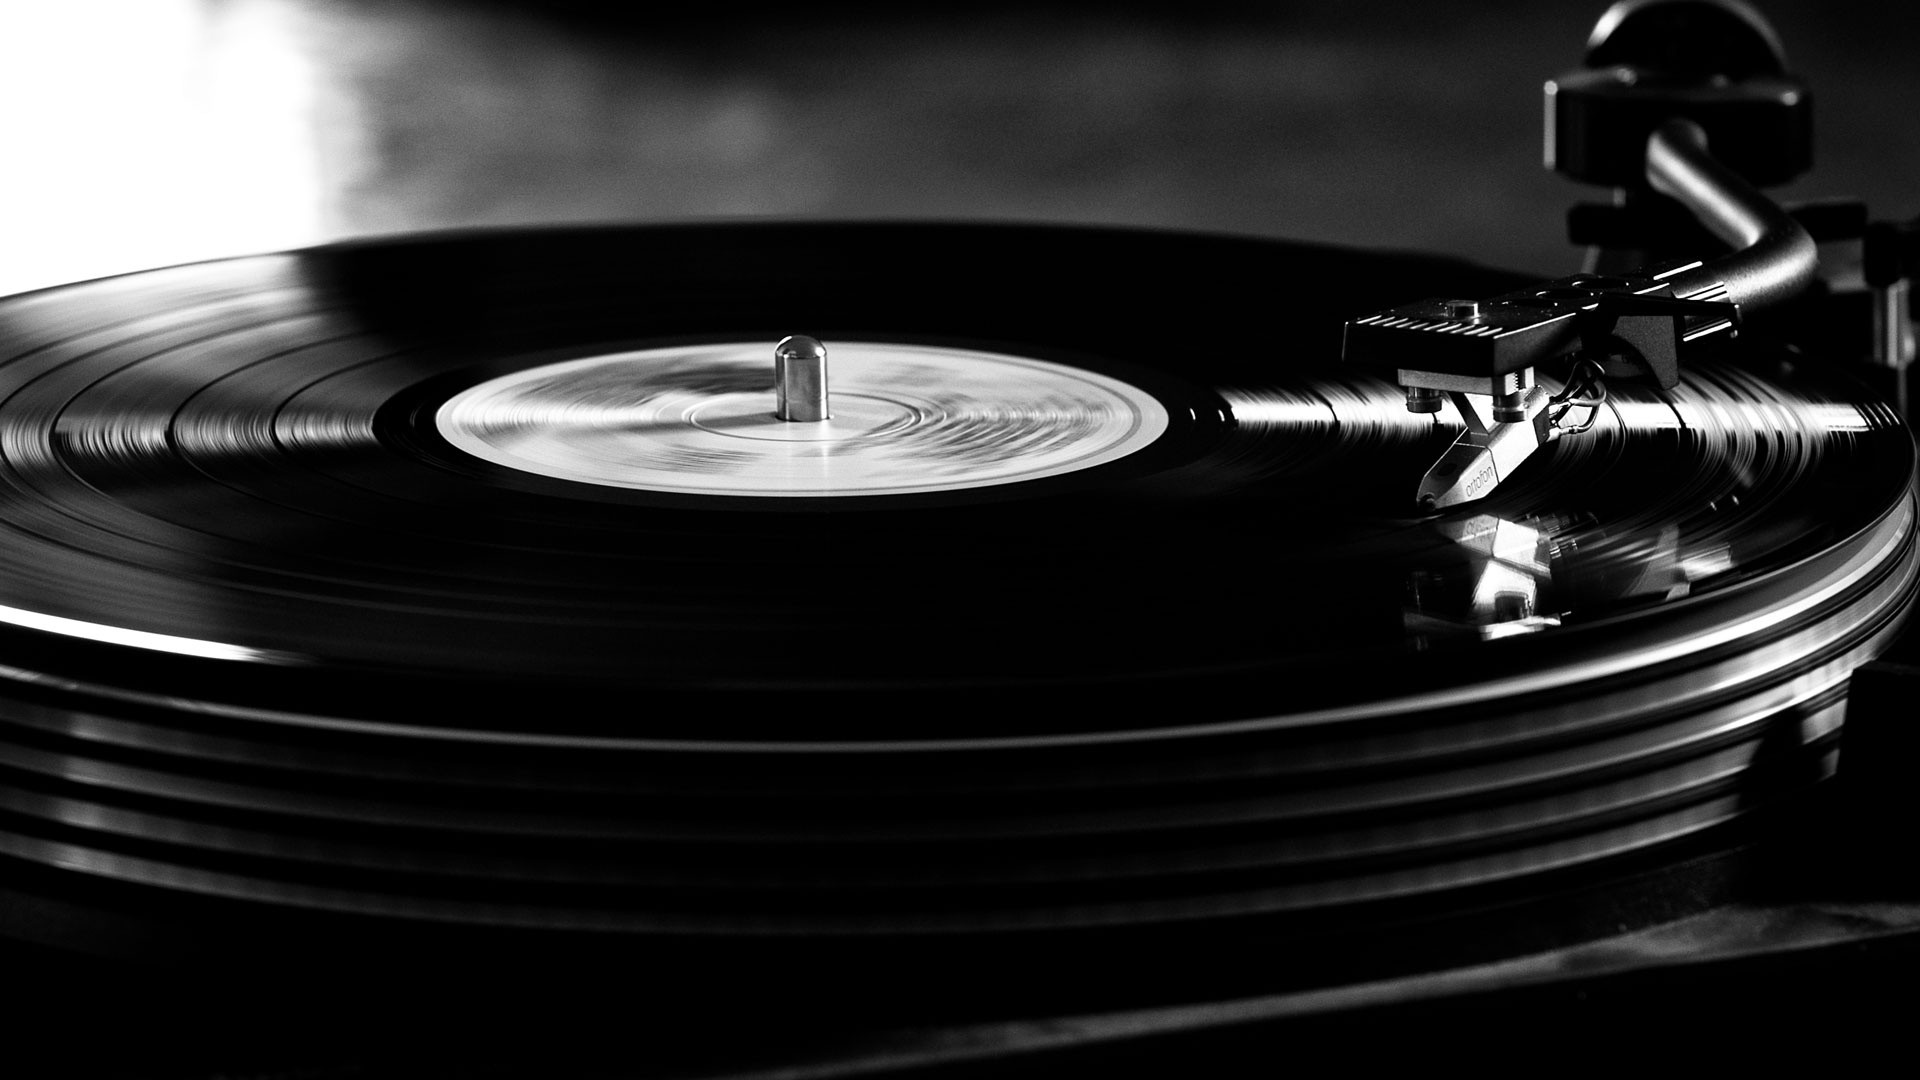 'HD vinyl' records could hit store shelves next year